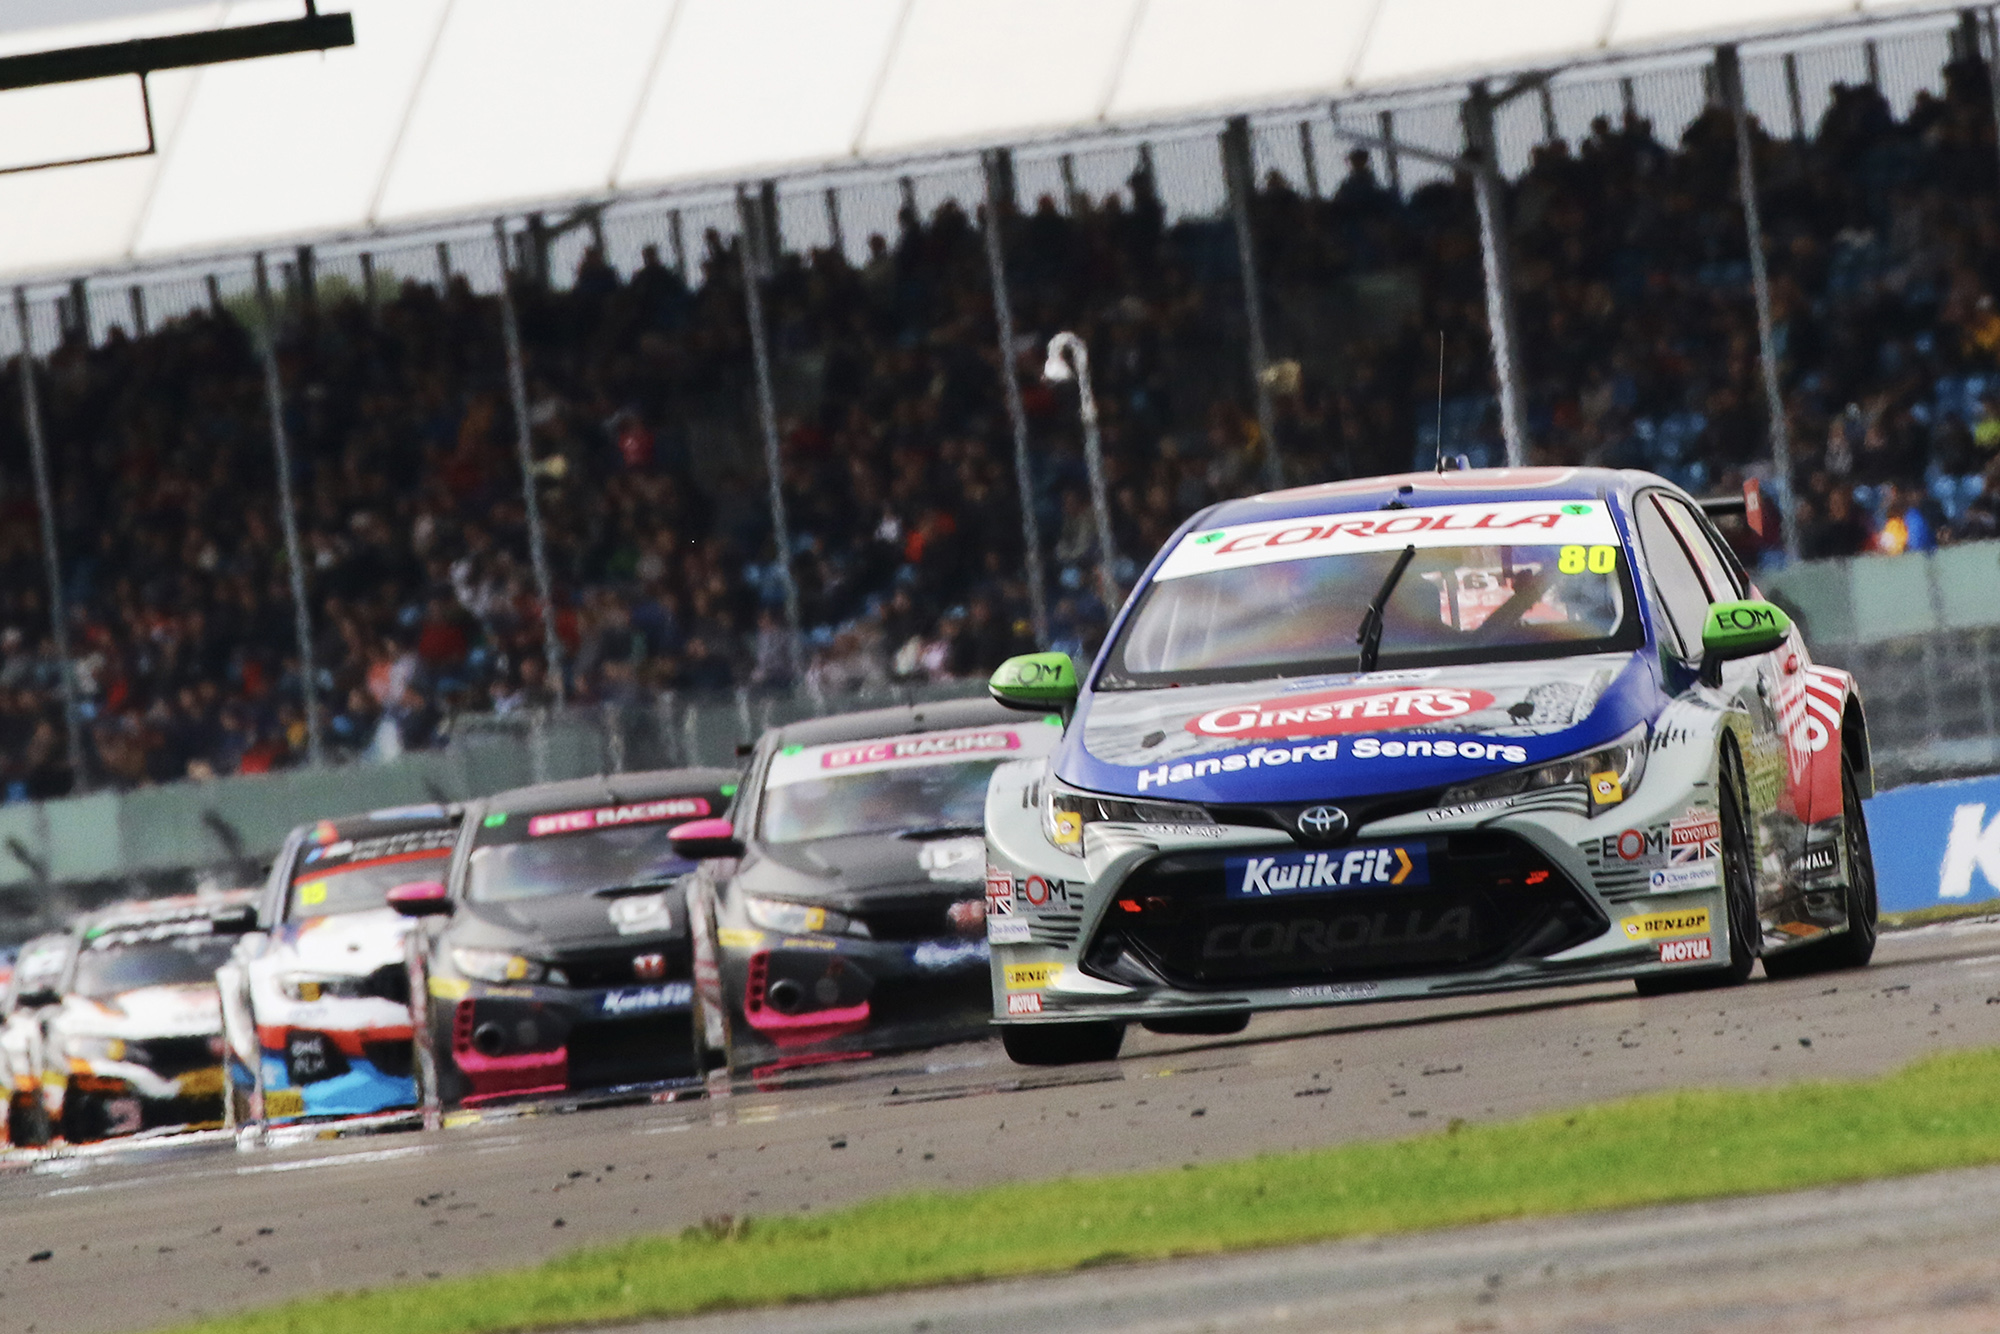 BTCC back to its best: why Brands Hatch showdown is unmissable